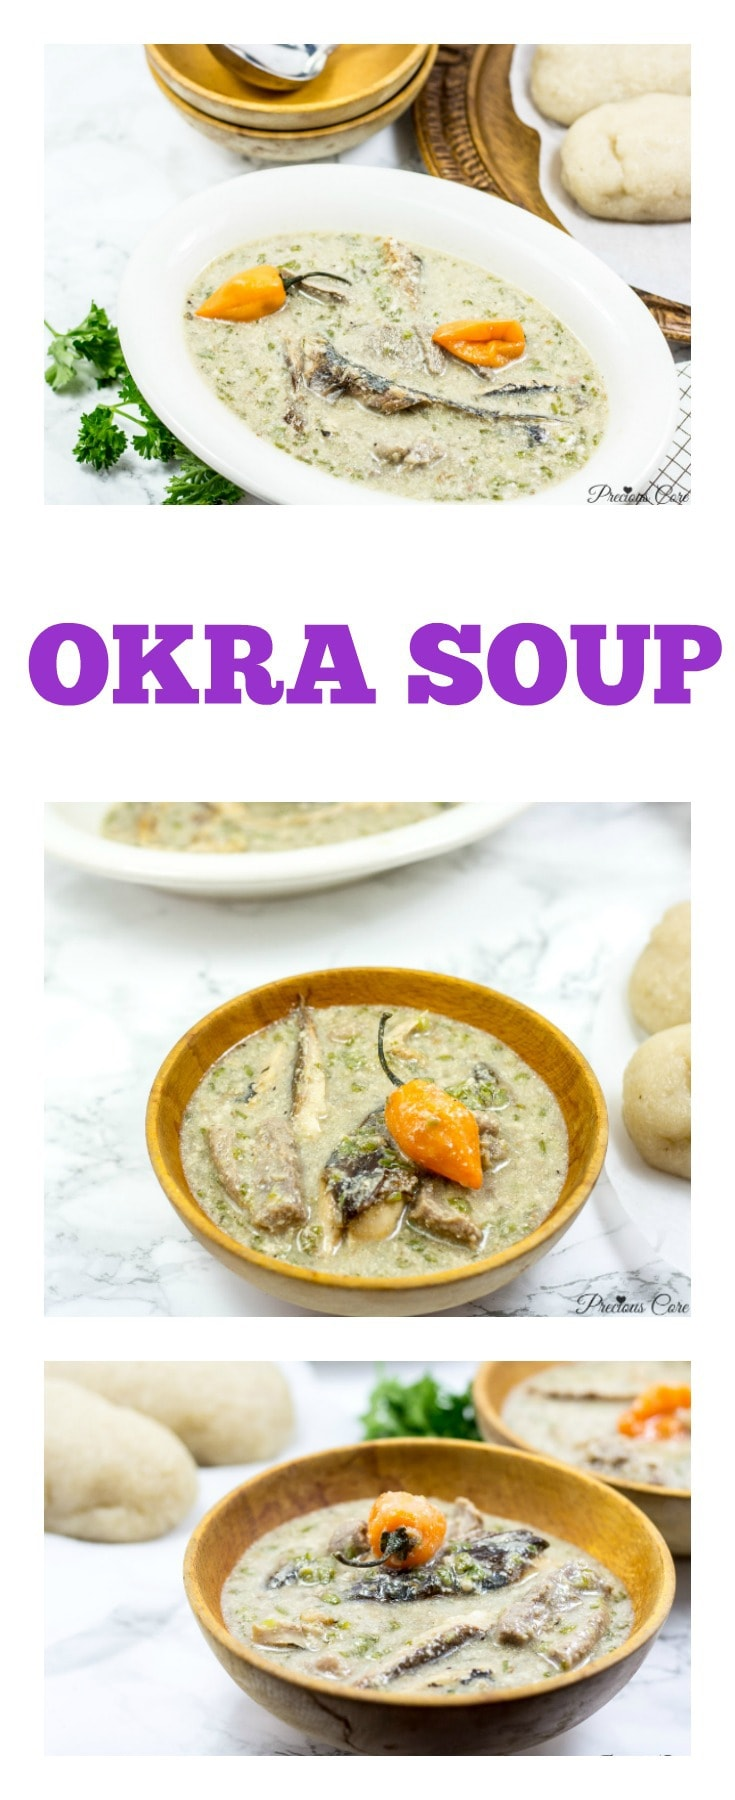 Okra Soup recipe